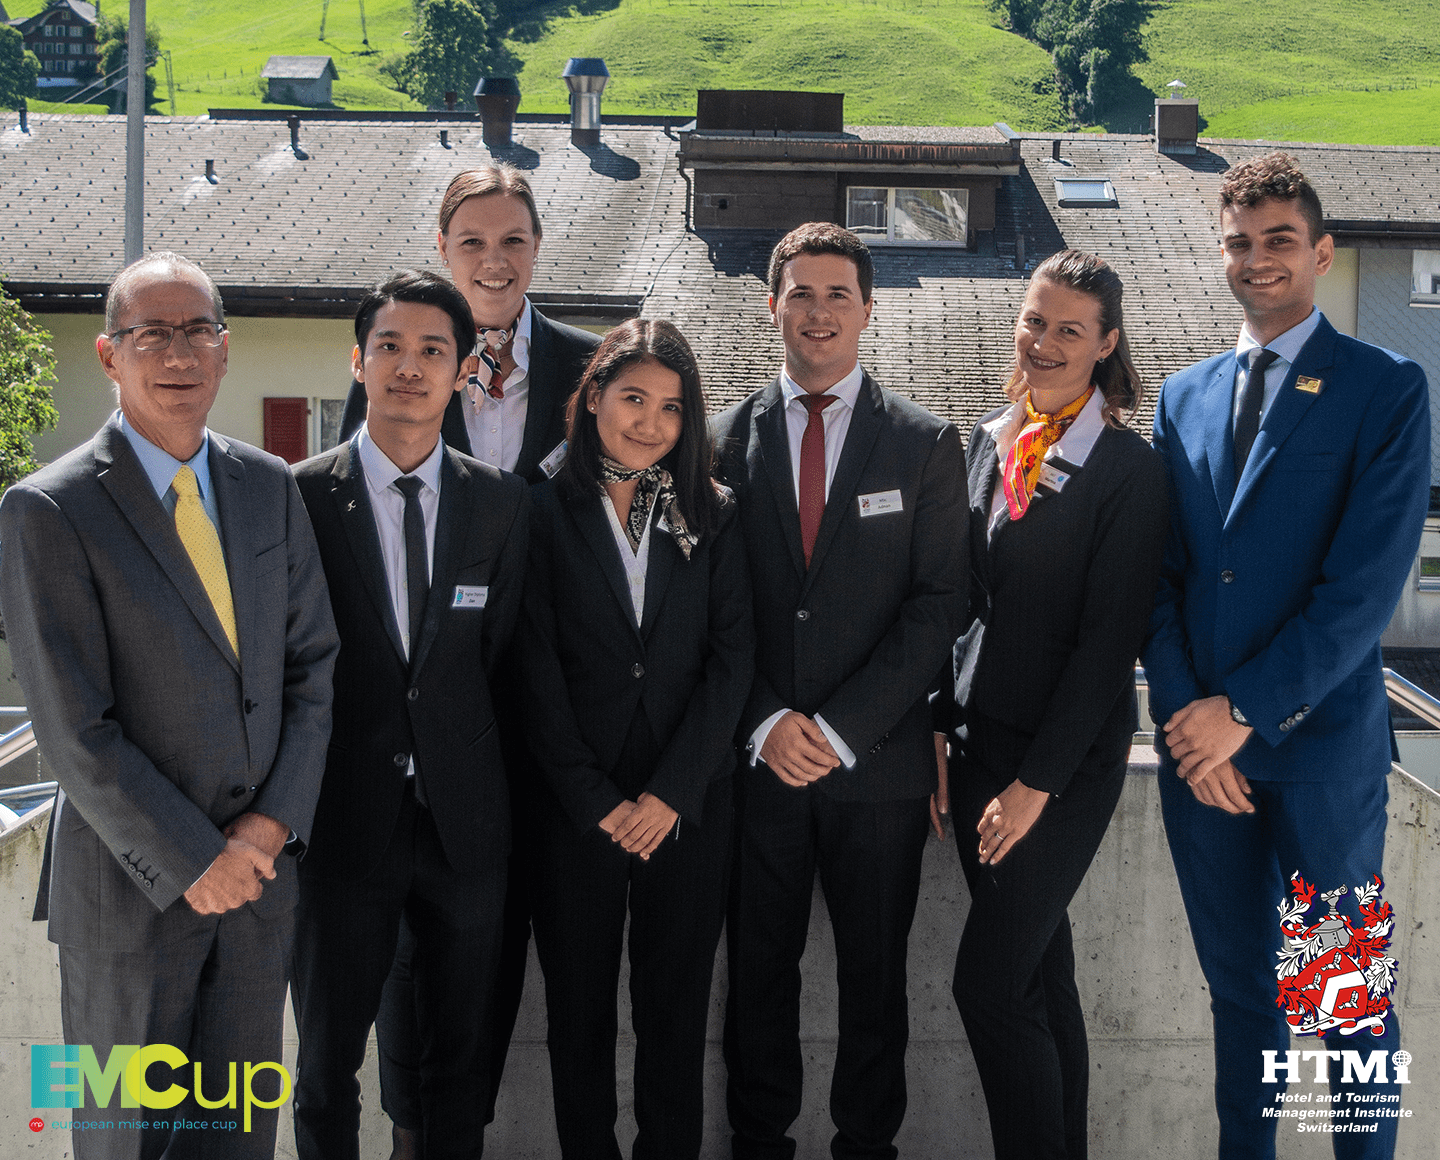 HTMi Switzerland Announces EMCup 2020 Team